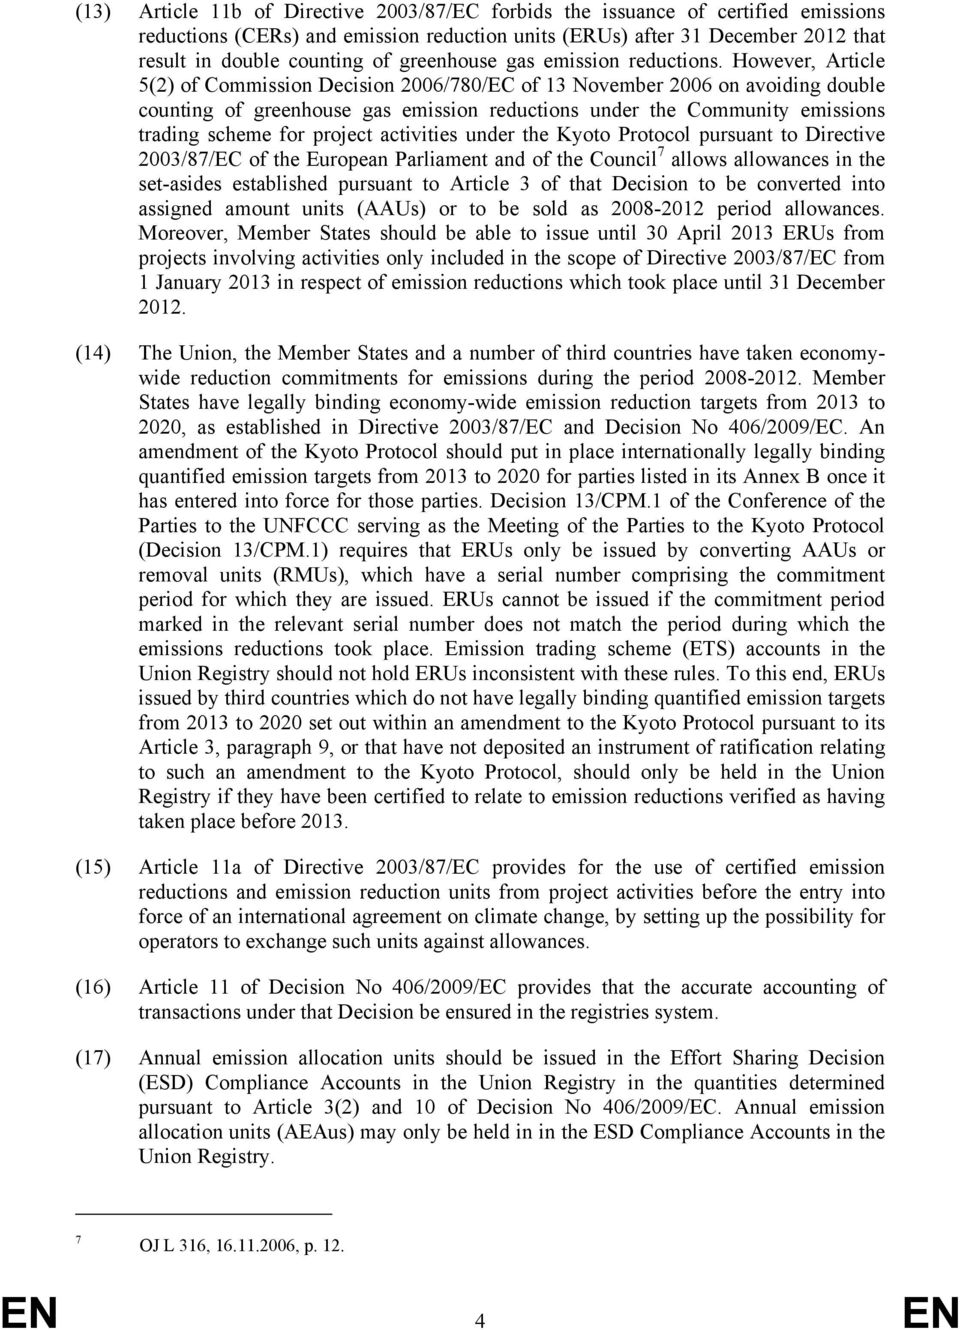 However, Article 5(2) of Commission Decision 2006/780/EC of 13 November 2006 on avoiding double counting of greenhouse gas emission reductions under the Community emissions trading scheme for project